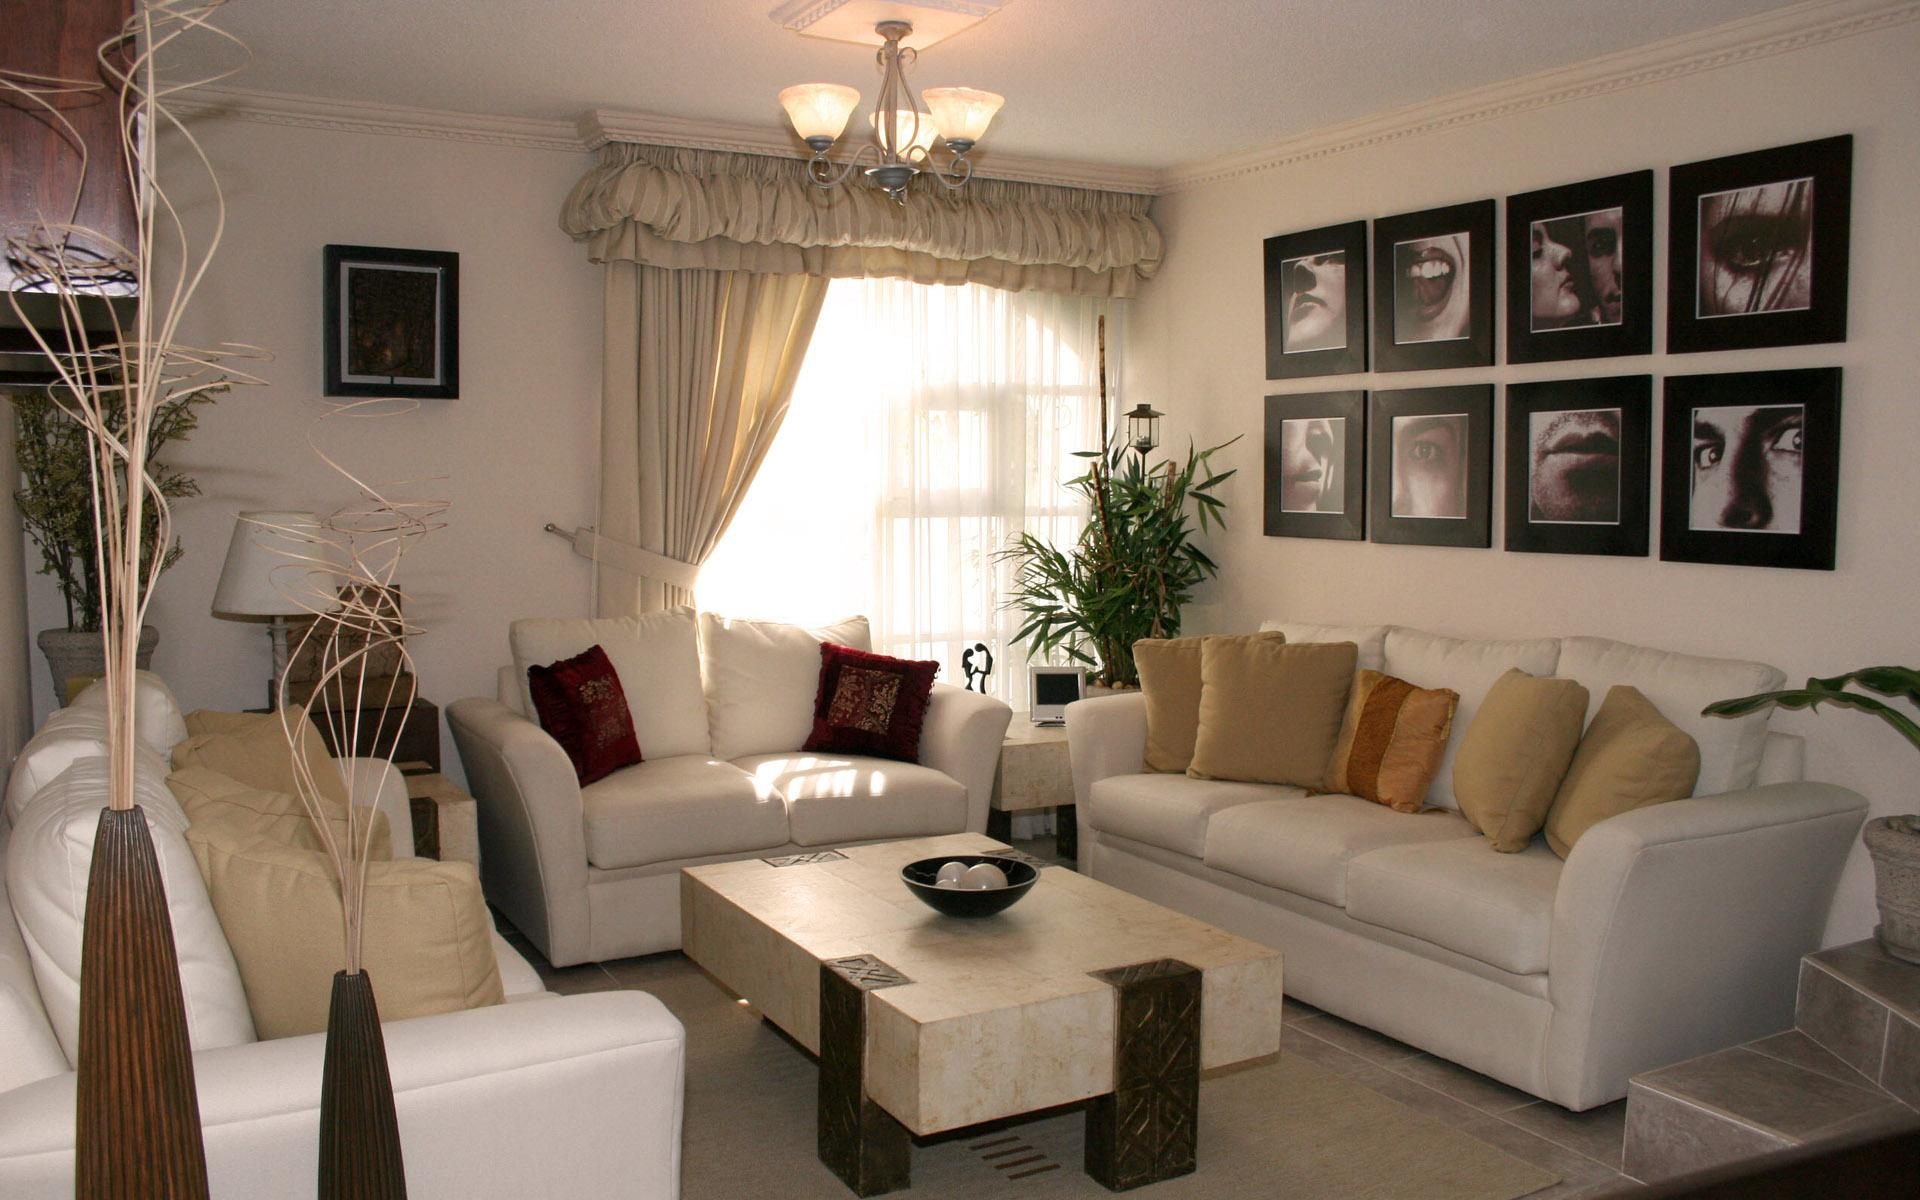 Stylish Living Room Stylish Living Room Fotolipcom Rich Image And Wallpaper